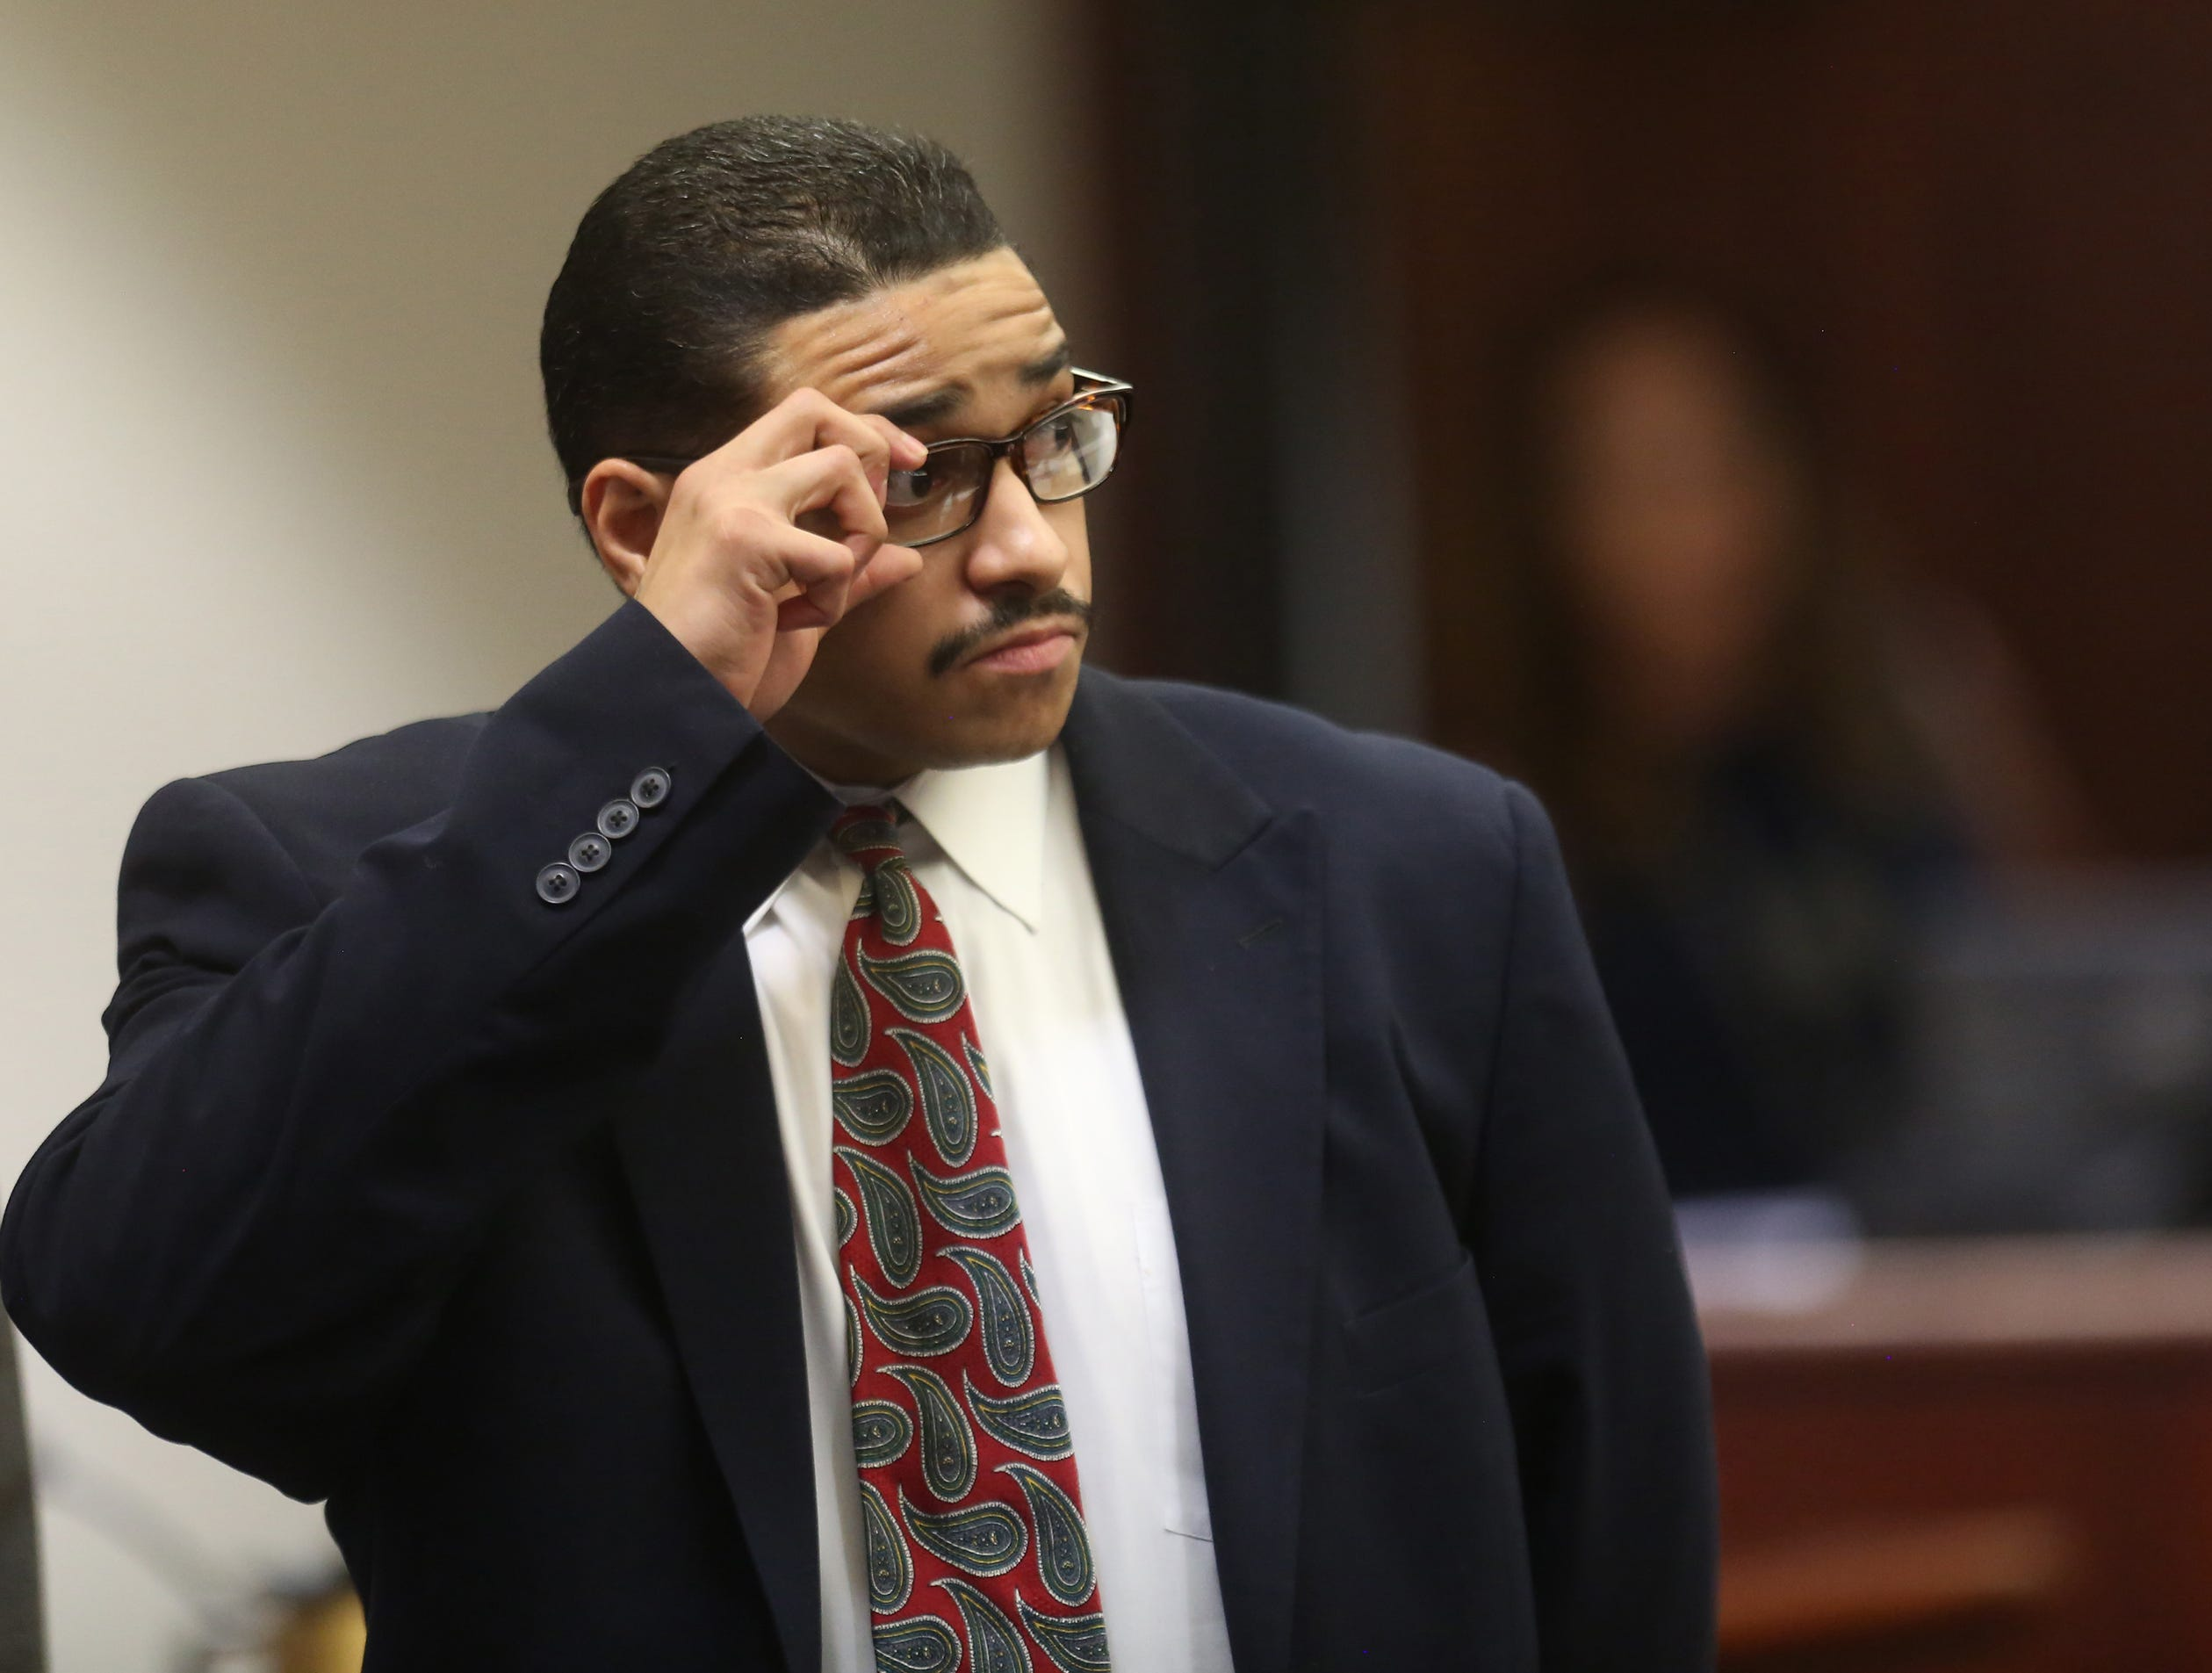 The trial of John Hernandez Felix, who faces the death penalty in the 2016 shooting deaths of Palm Springs police officers Jose Gilbert Vega and Lesley Zerebny, has begun. Felix is photographed during a break in the proceedings on April 17, 2019.